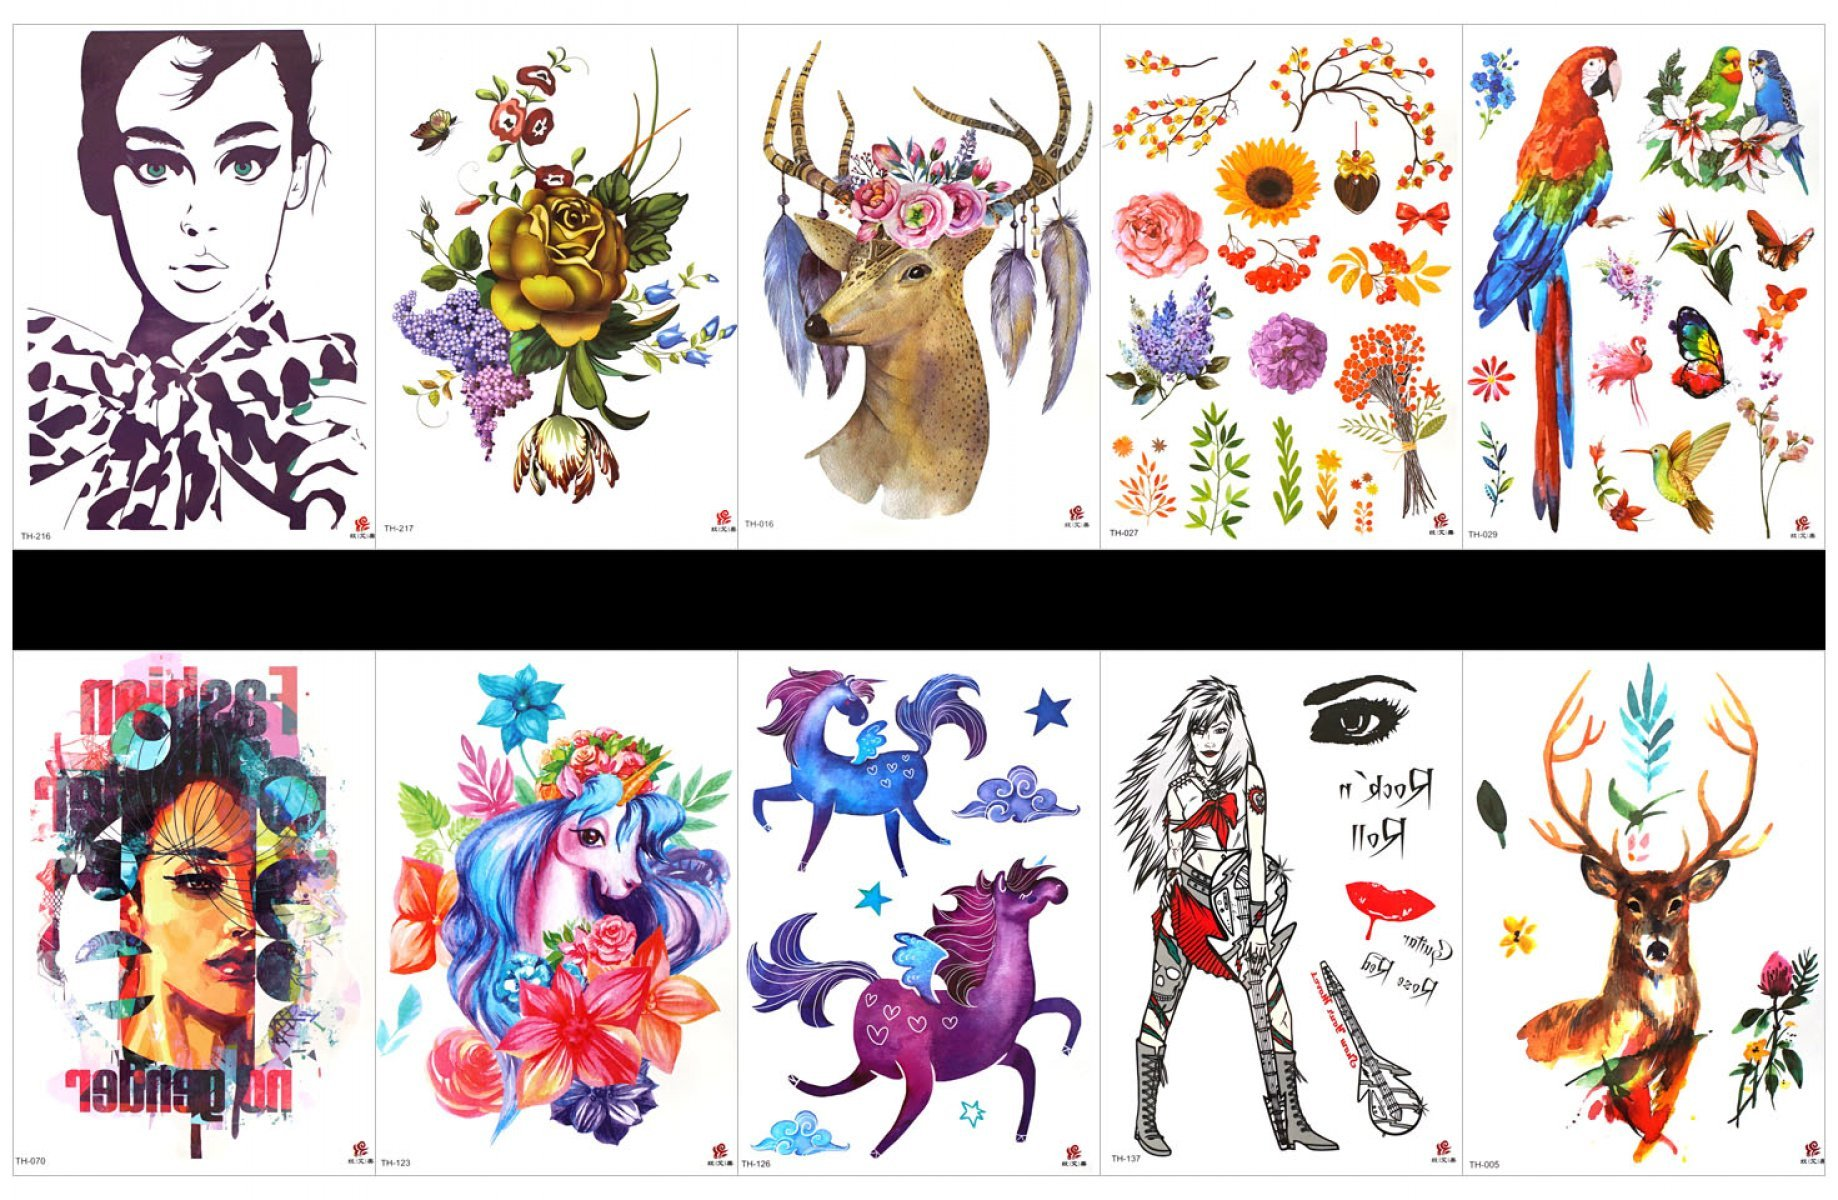 GGSELL GGSELL 10pcs tattoo horse temporary tattoos in one packages,including lady,rose,deer,flowers,parrot,birds,woman,horse with flowers,lady,deer,etc.